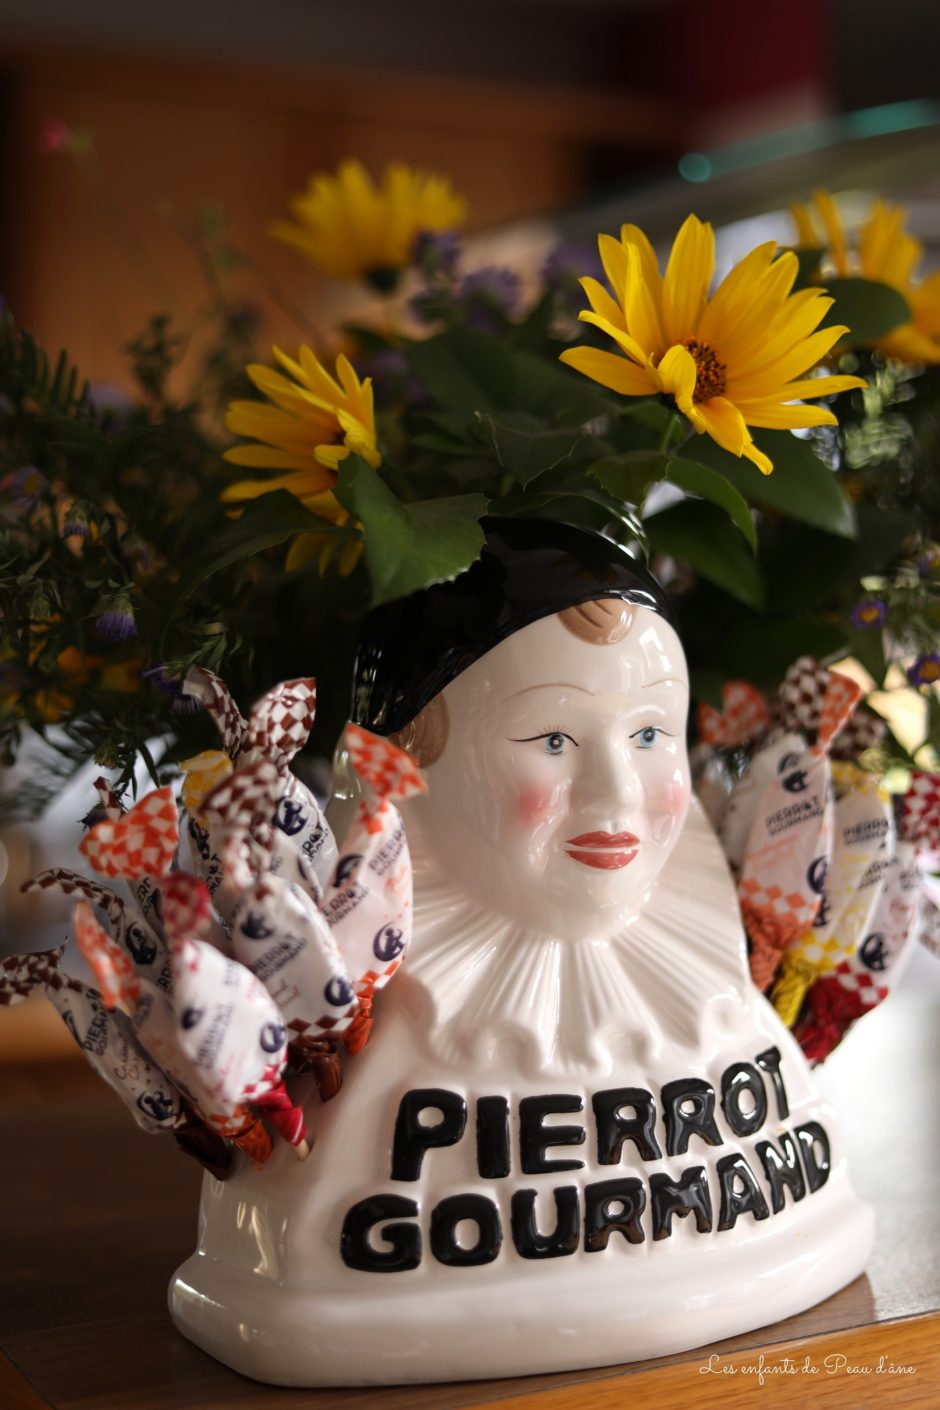 Pierrot Gourmand - Buste sucettes